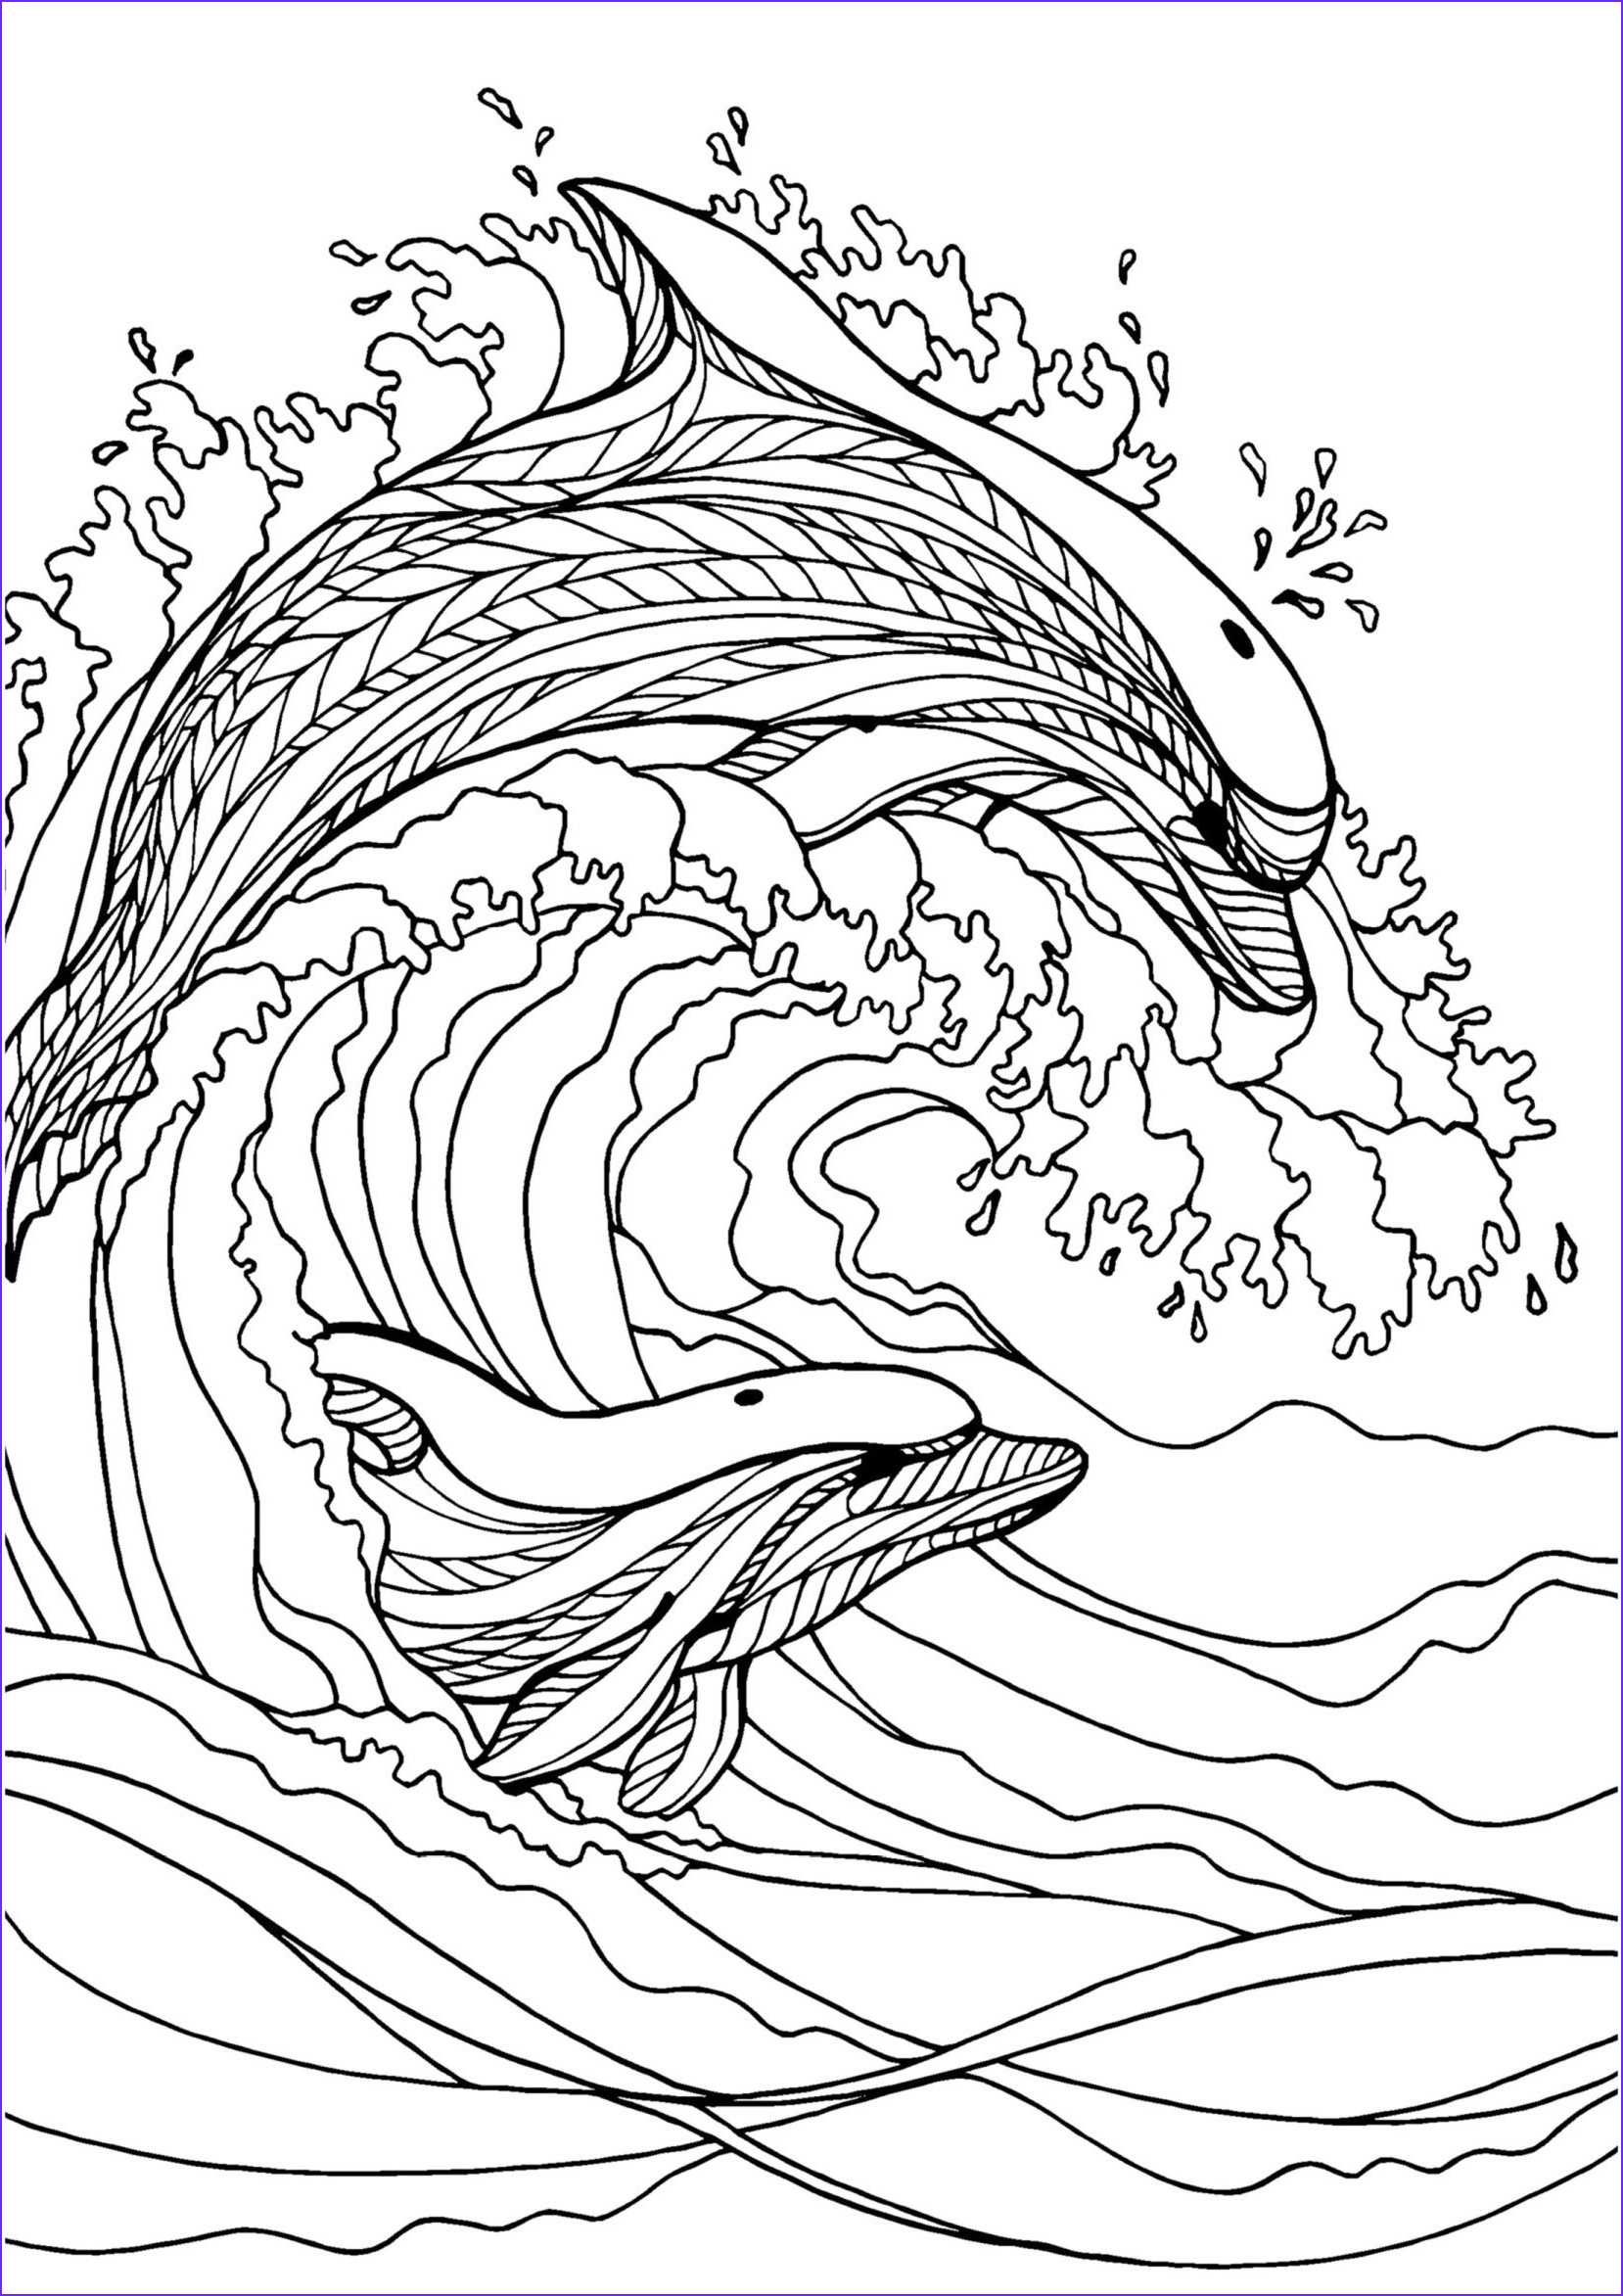 Dolphin Coloring Book New Image Dolphin Adult Colouring Page Colouring In Sheets Art